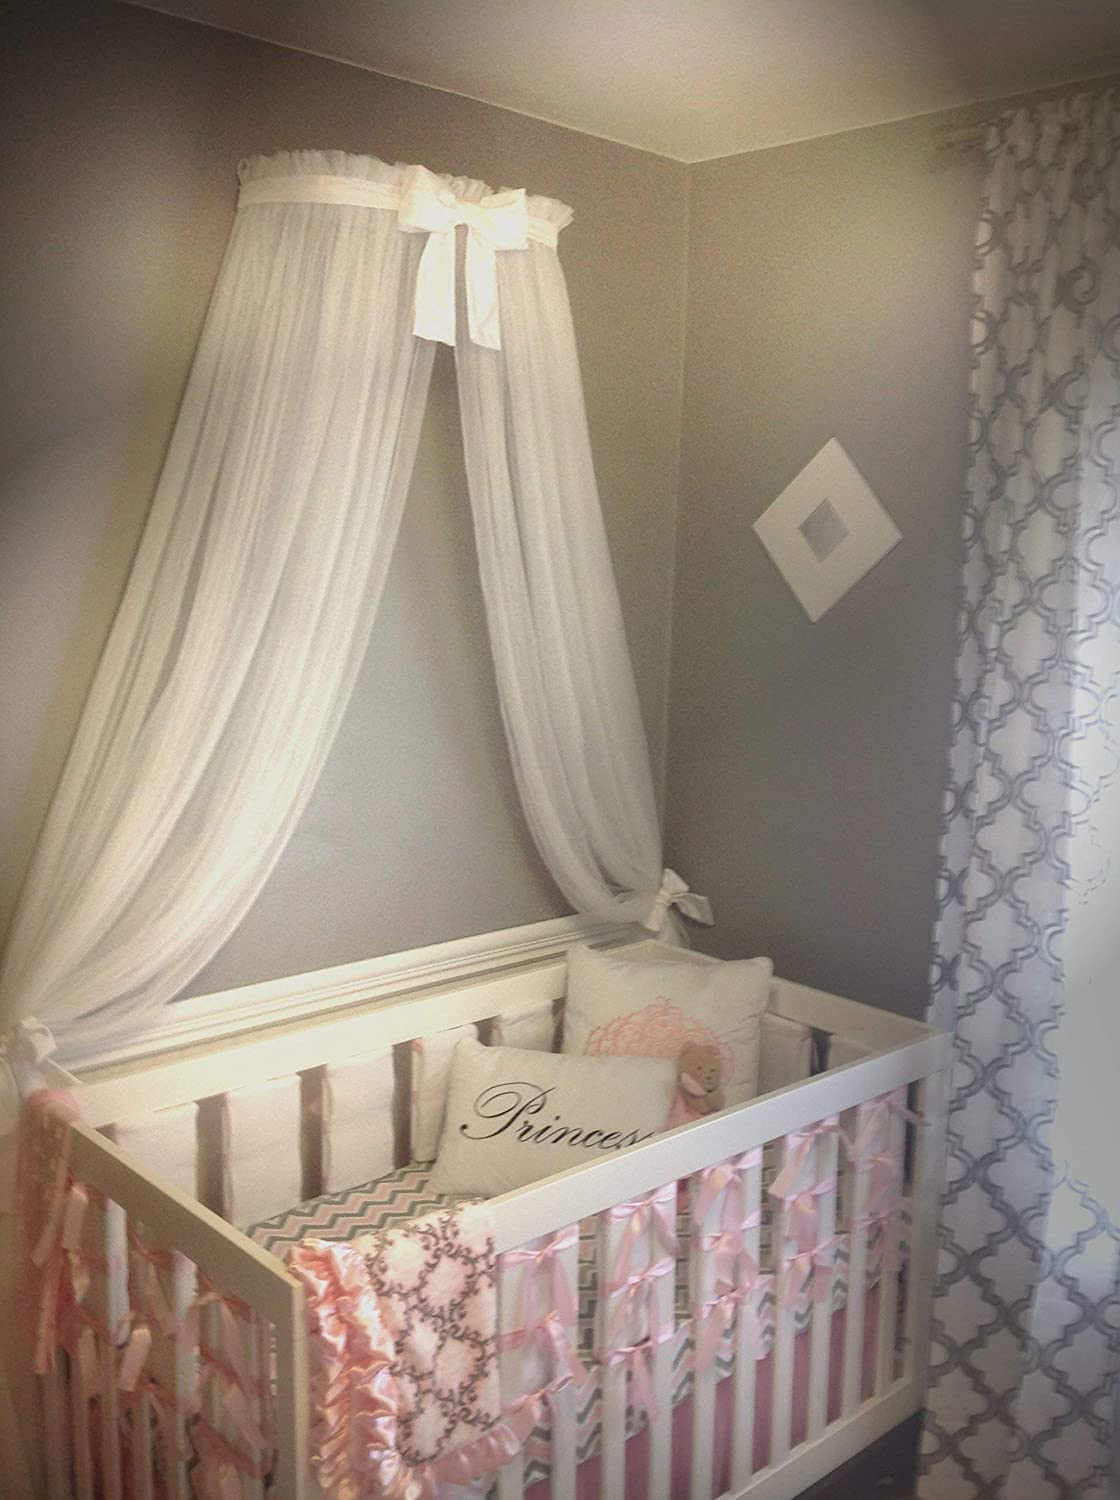 Amazoncom Princess Bed Canopy Crown Free White Sheer Curtain Bow